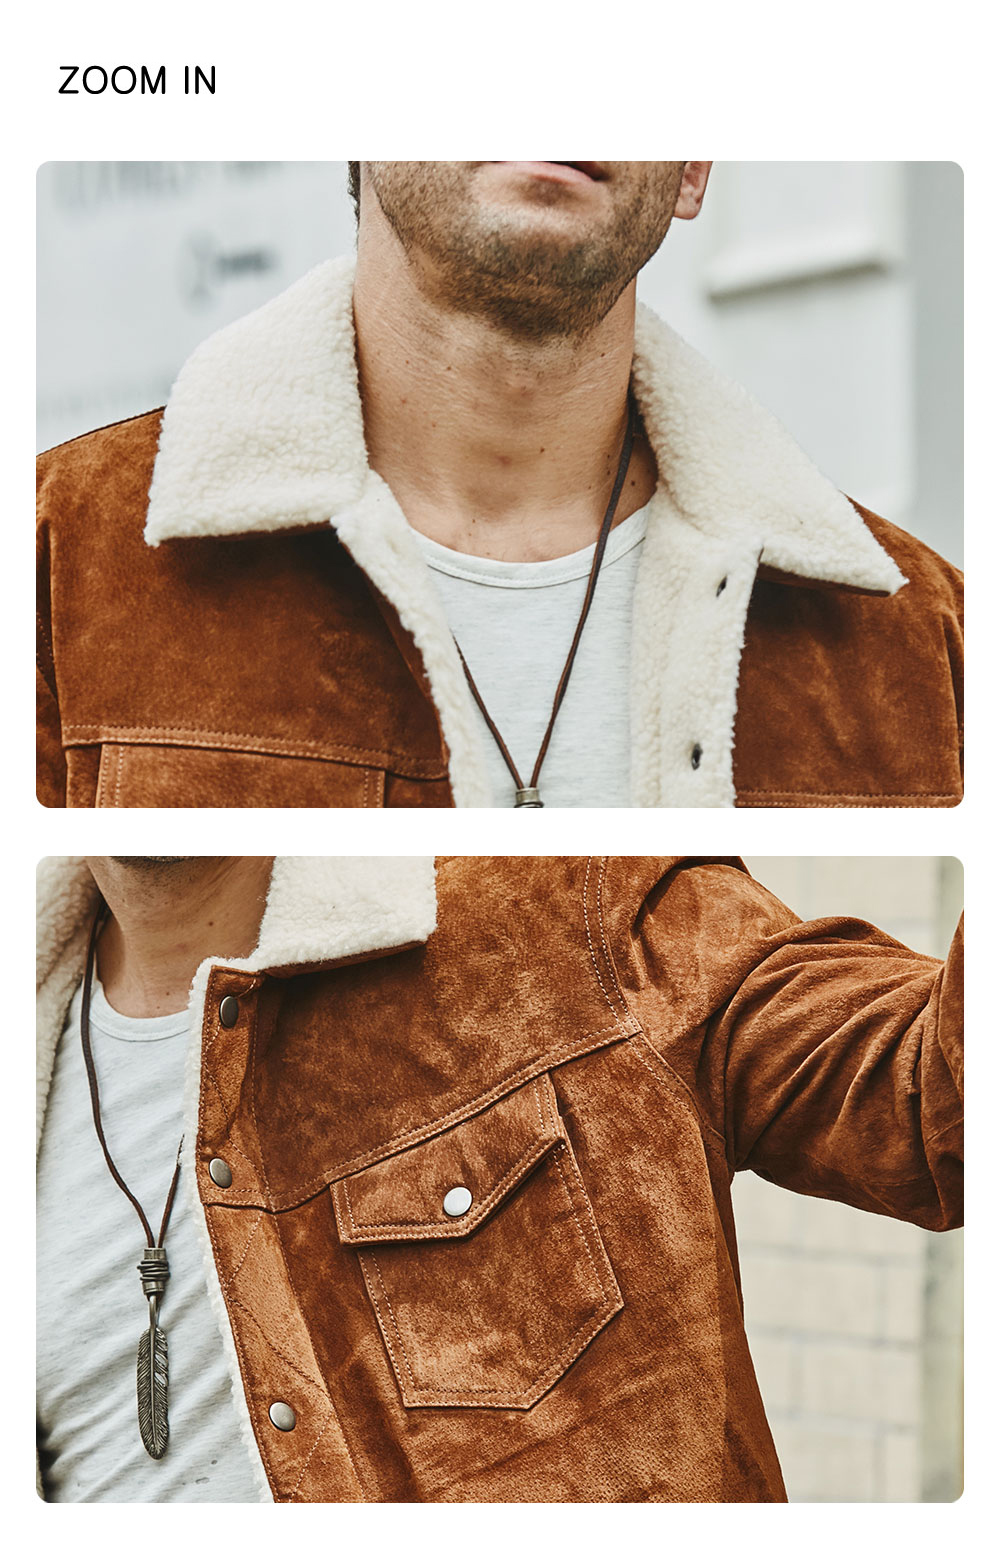 Hcf9b26c20a36411a876bec16ea4440d9U FLAVOR New Men's Real Leather Jacket Genuine Leather With Faux Shearling Warm Coat Men